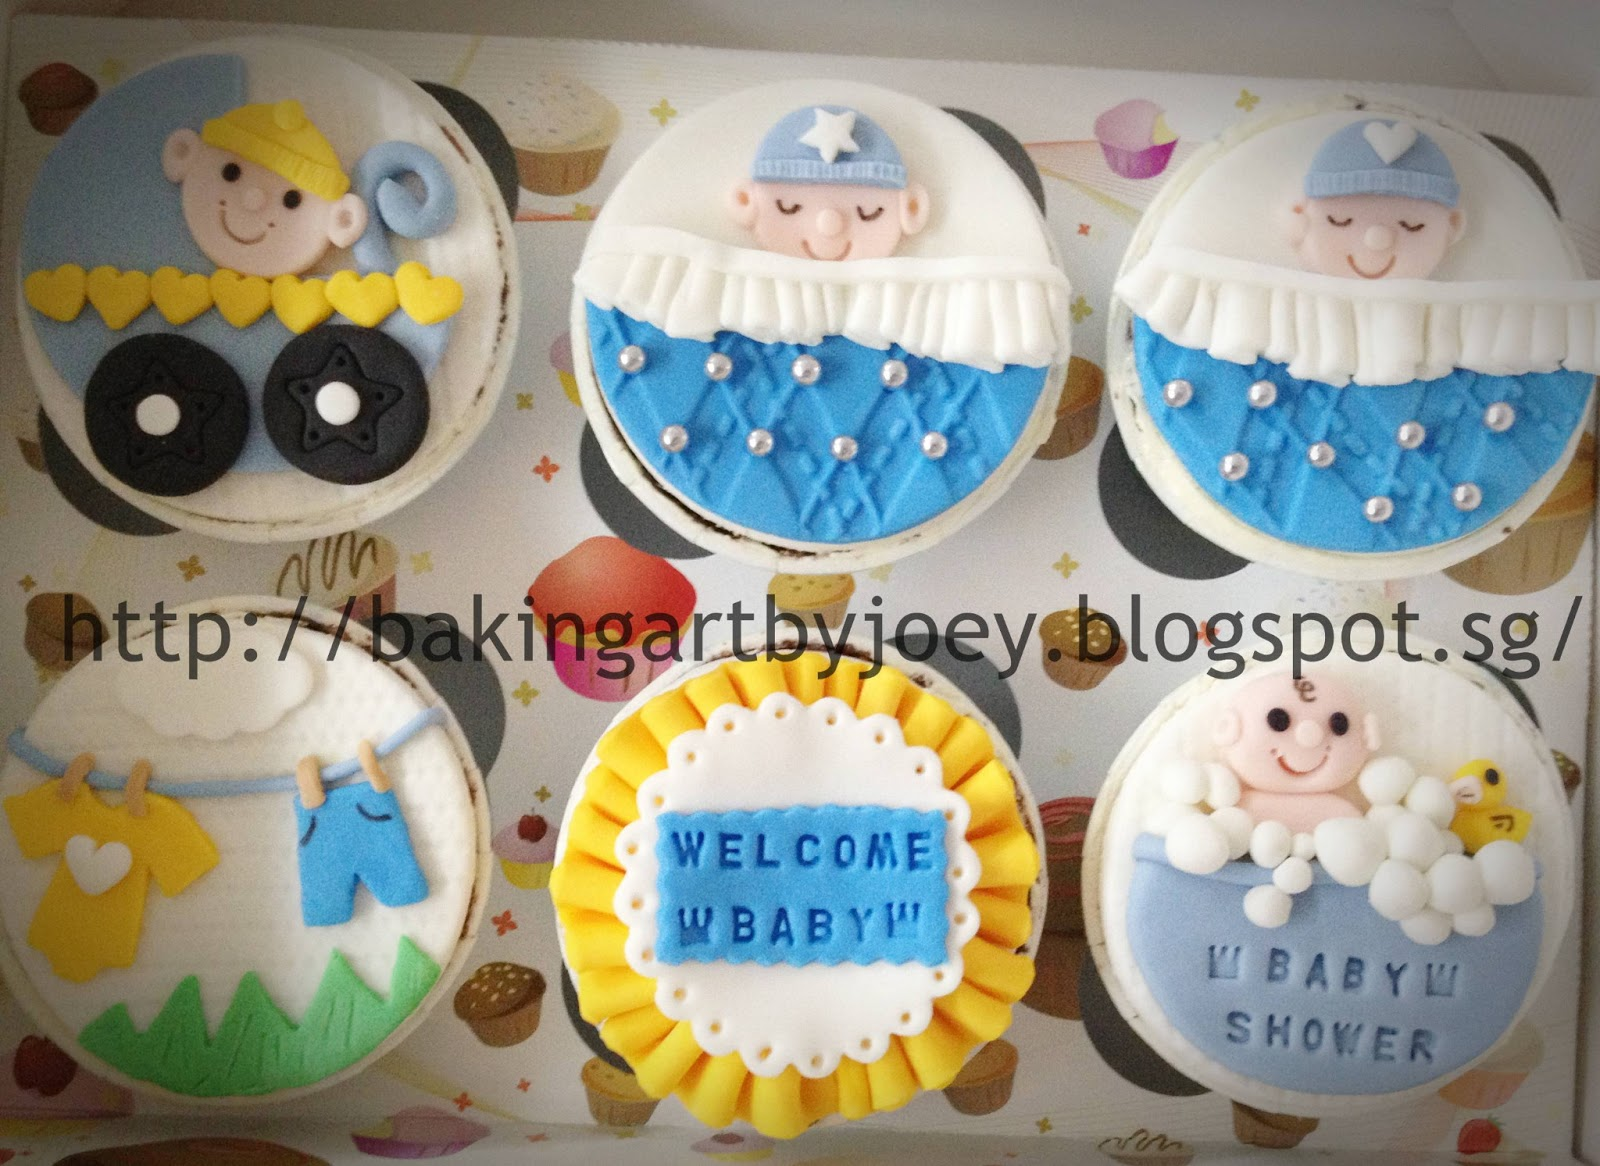 Baby Shower Ideas Cupcake Themed : Baking Art by Joey: Baby Shower Themed Cupcakes